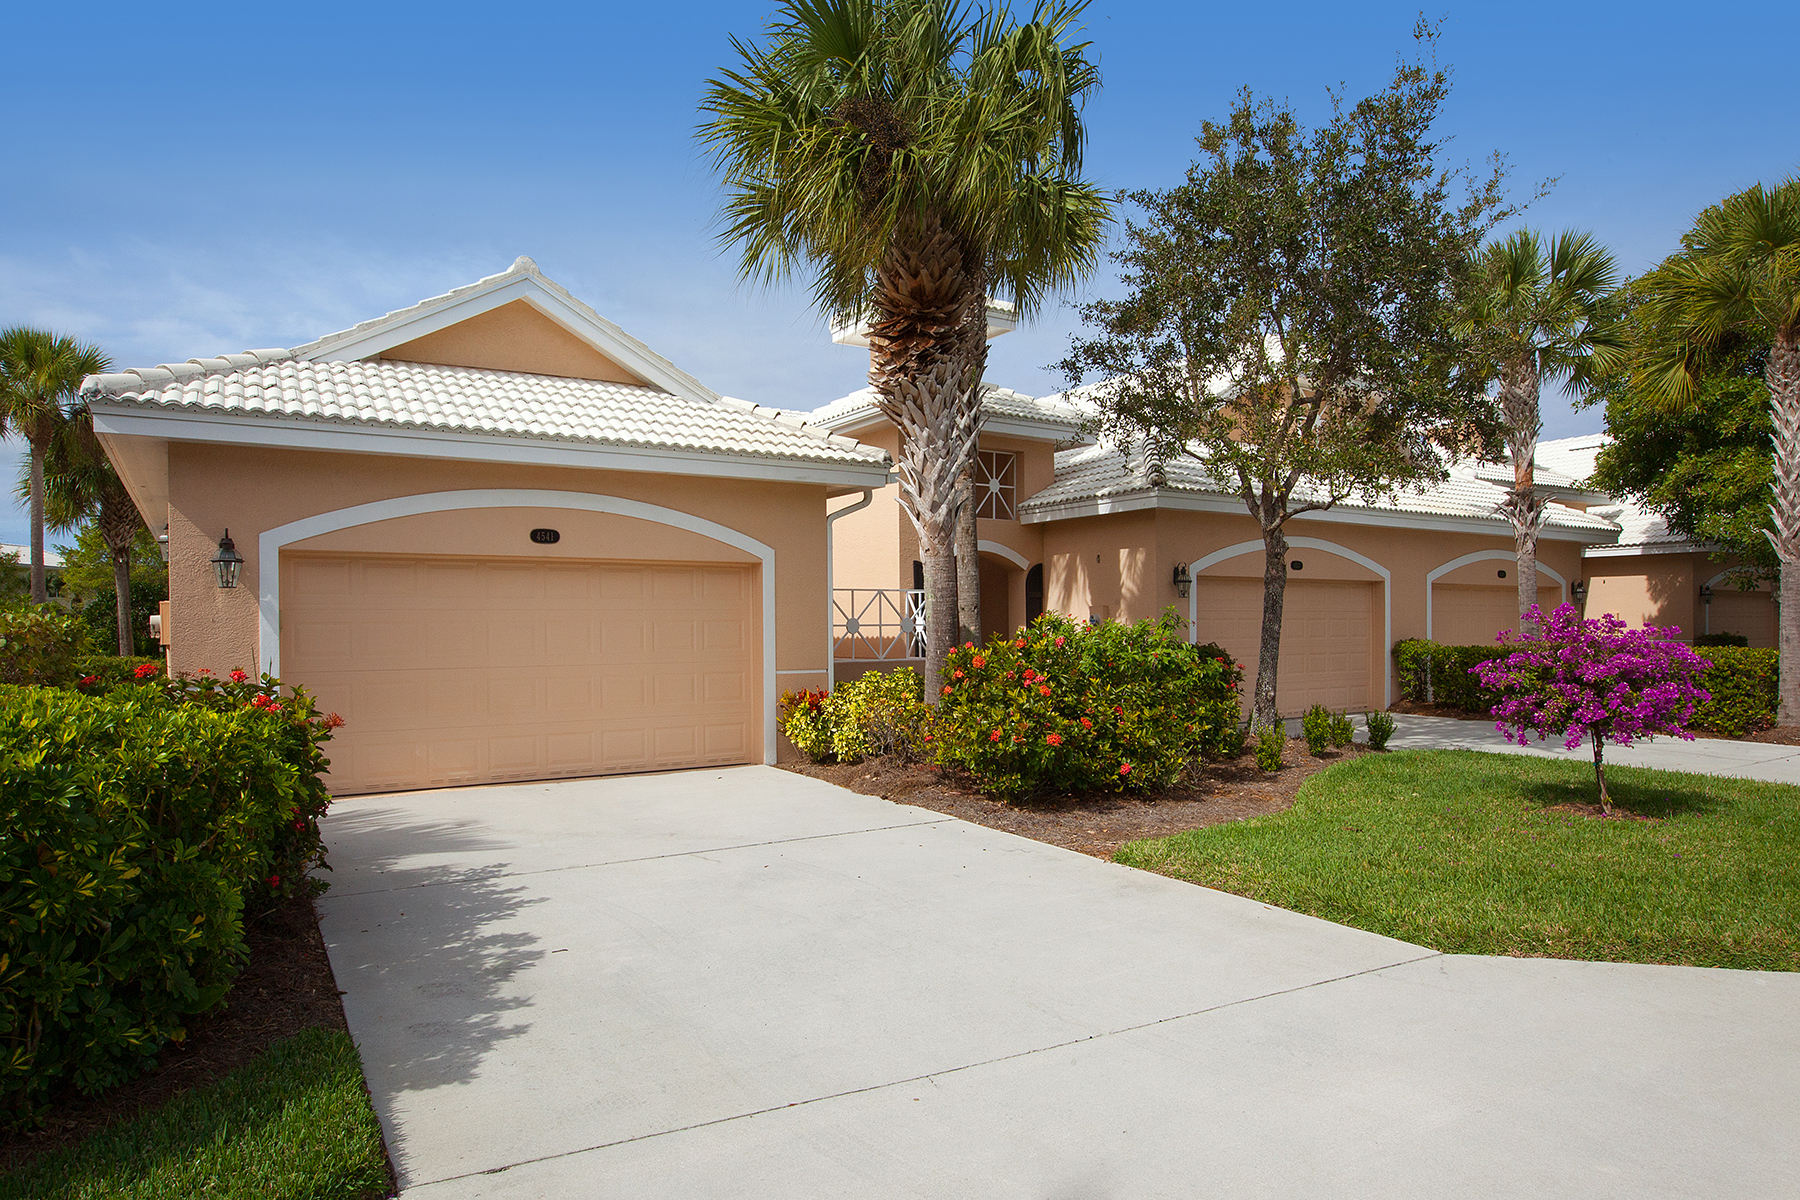 Townhouse for Sale at FIDDLERS' CREEK - CARDINAL COVE 4541 Cardinal Cove Ln Naples, Florida 34114 United States